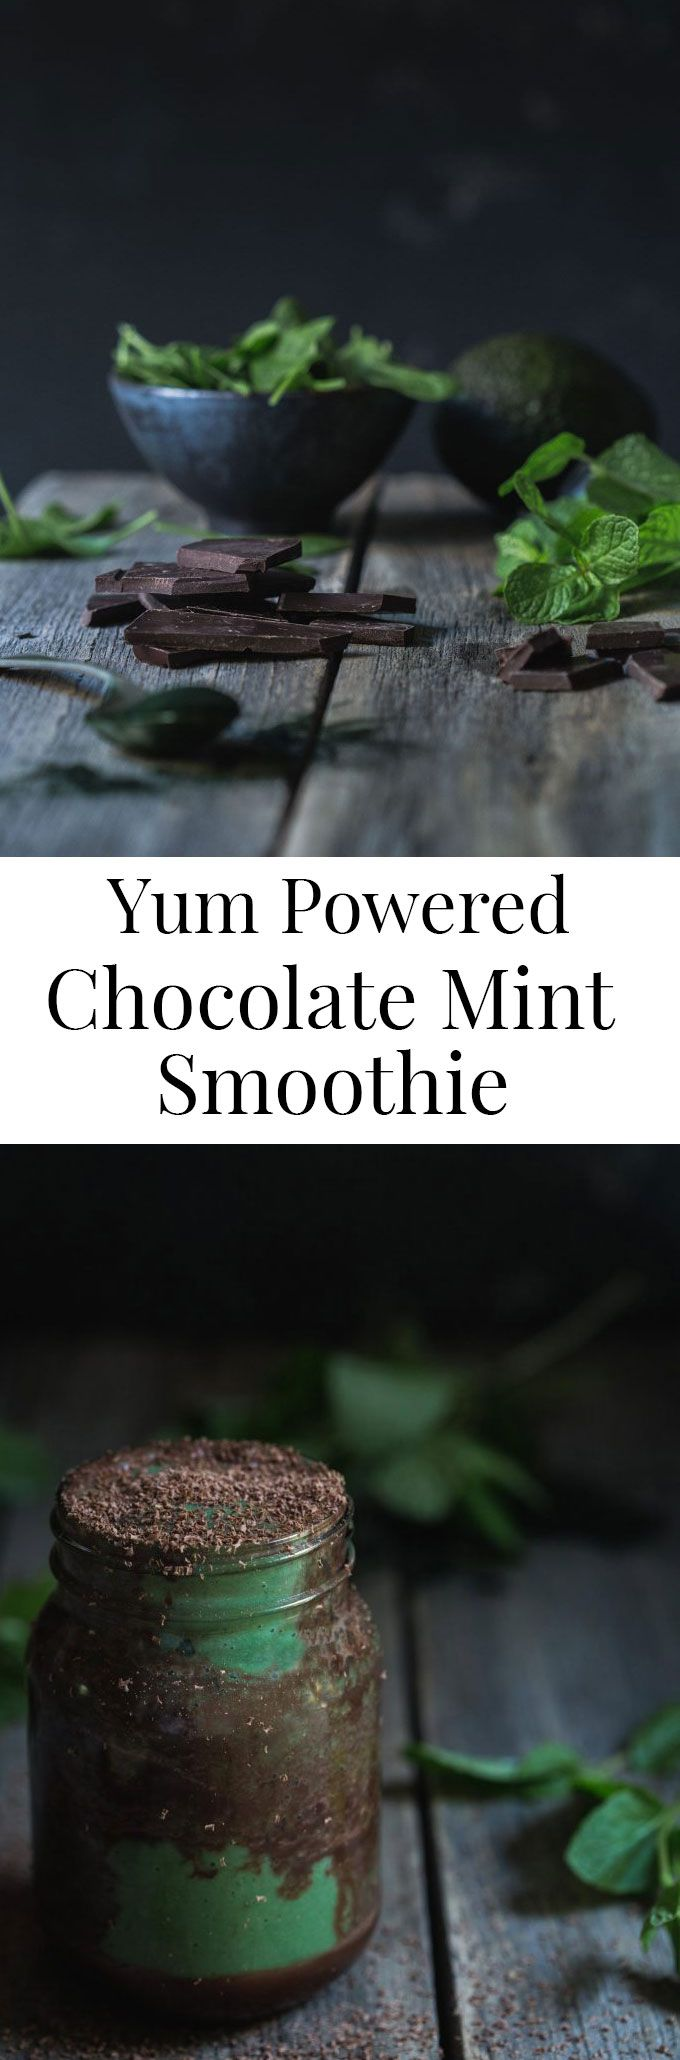 This Yum Powered Chocolate Mint Smoothie is not only a nutritious glass; it's a cup full of delicious and fun flavours. The kids are going to love this.